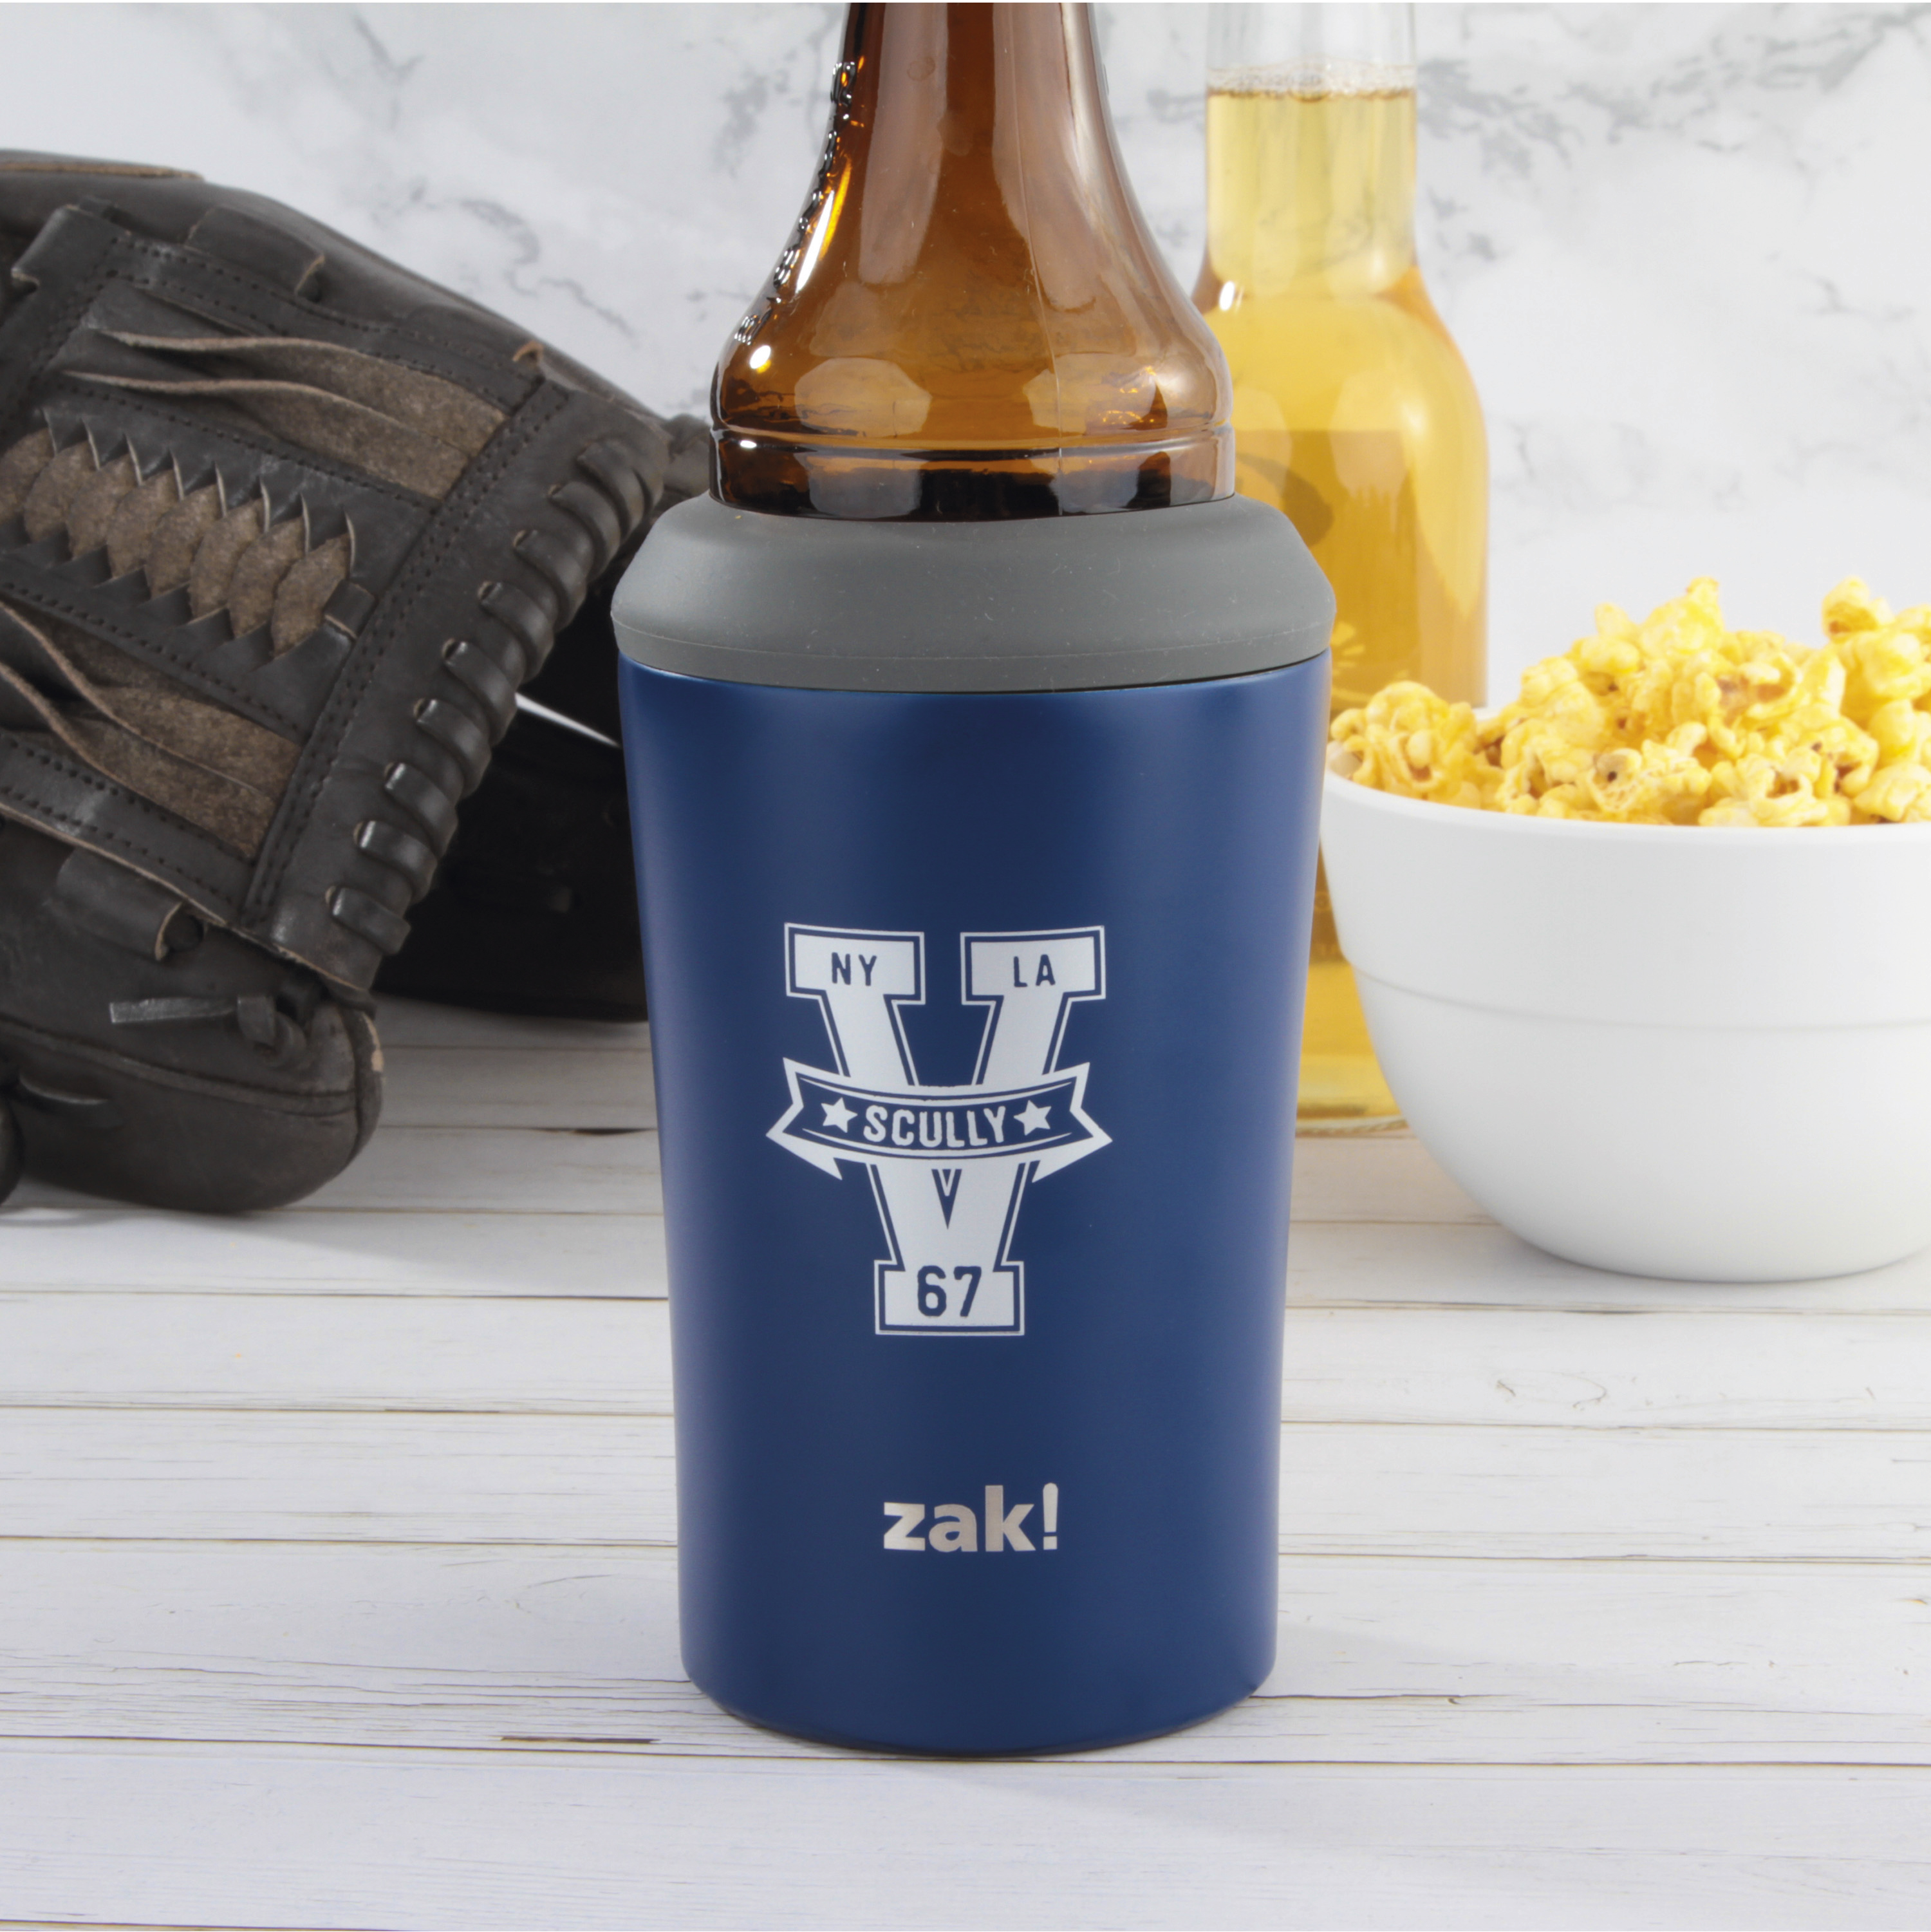 Zak Hydration 12 ounce Double Wall Stainless Steel Can and Bottle Cooler with Vacuum Insulation, Vin Scully slideshow image 2